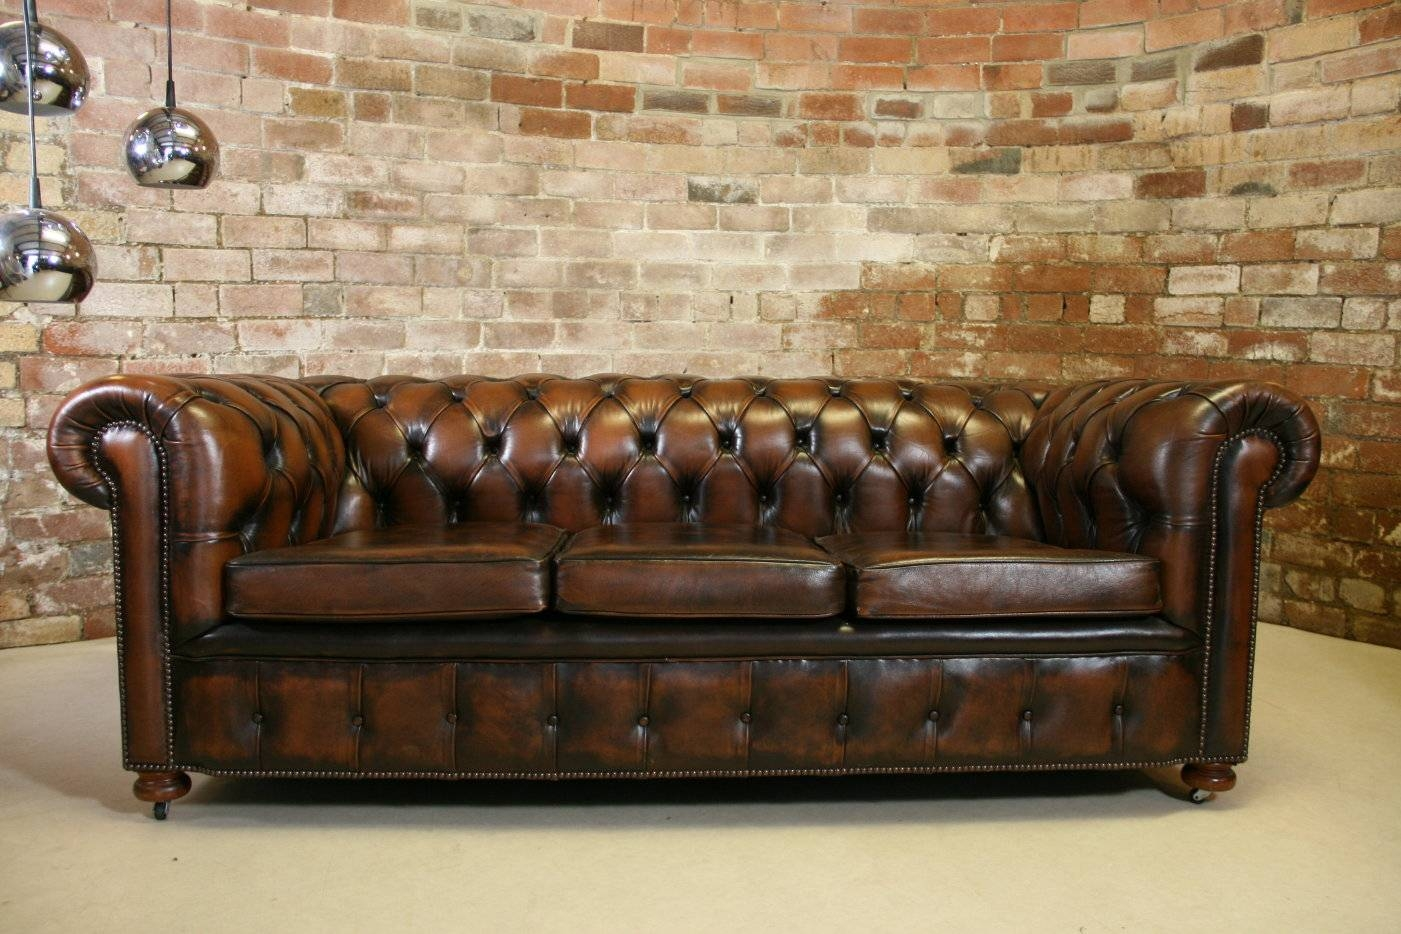 Sofas Center : Awesomeque Sofa Styles Photo Design Pictures pertaining to Vintage Sofa Styles (Image 18 of 30)